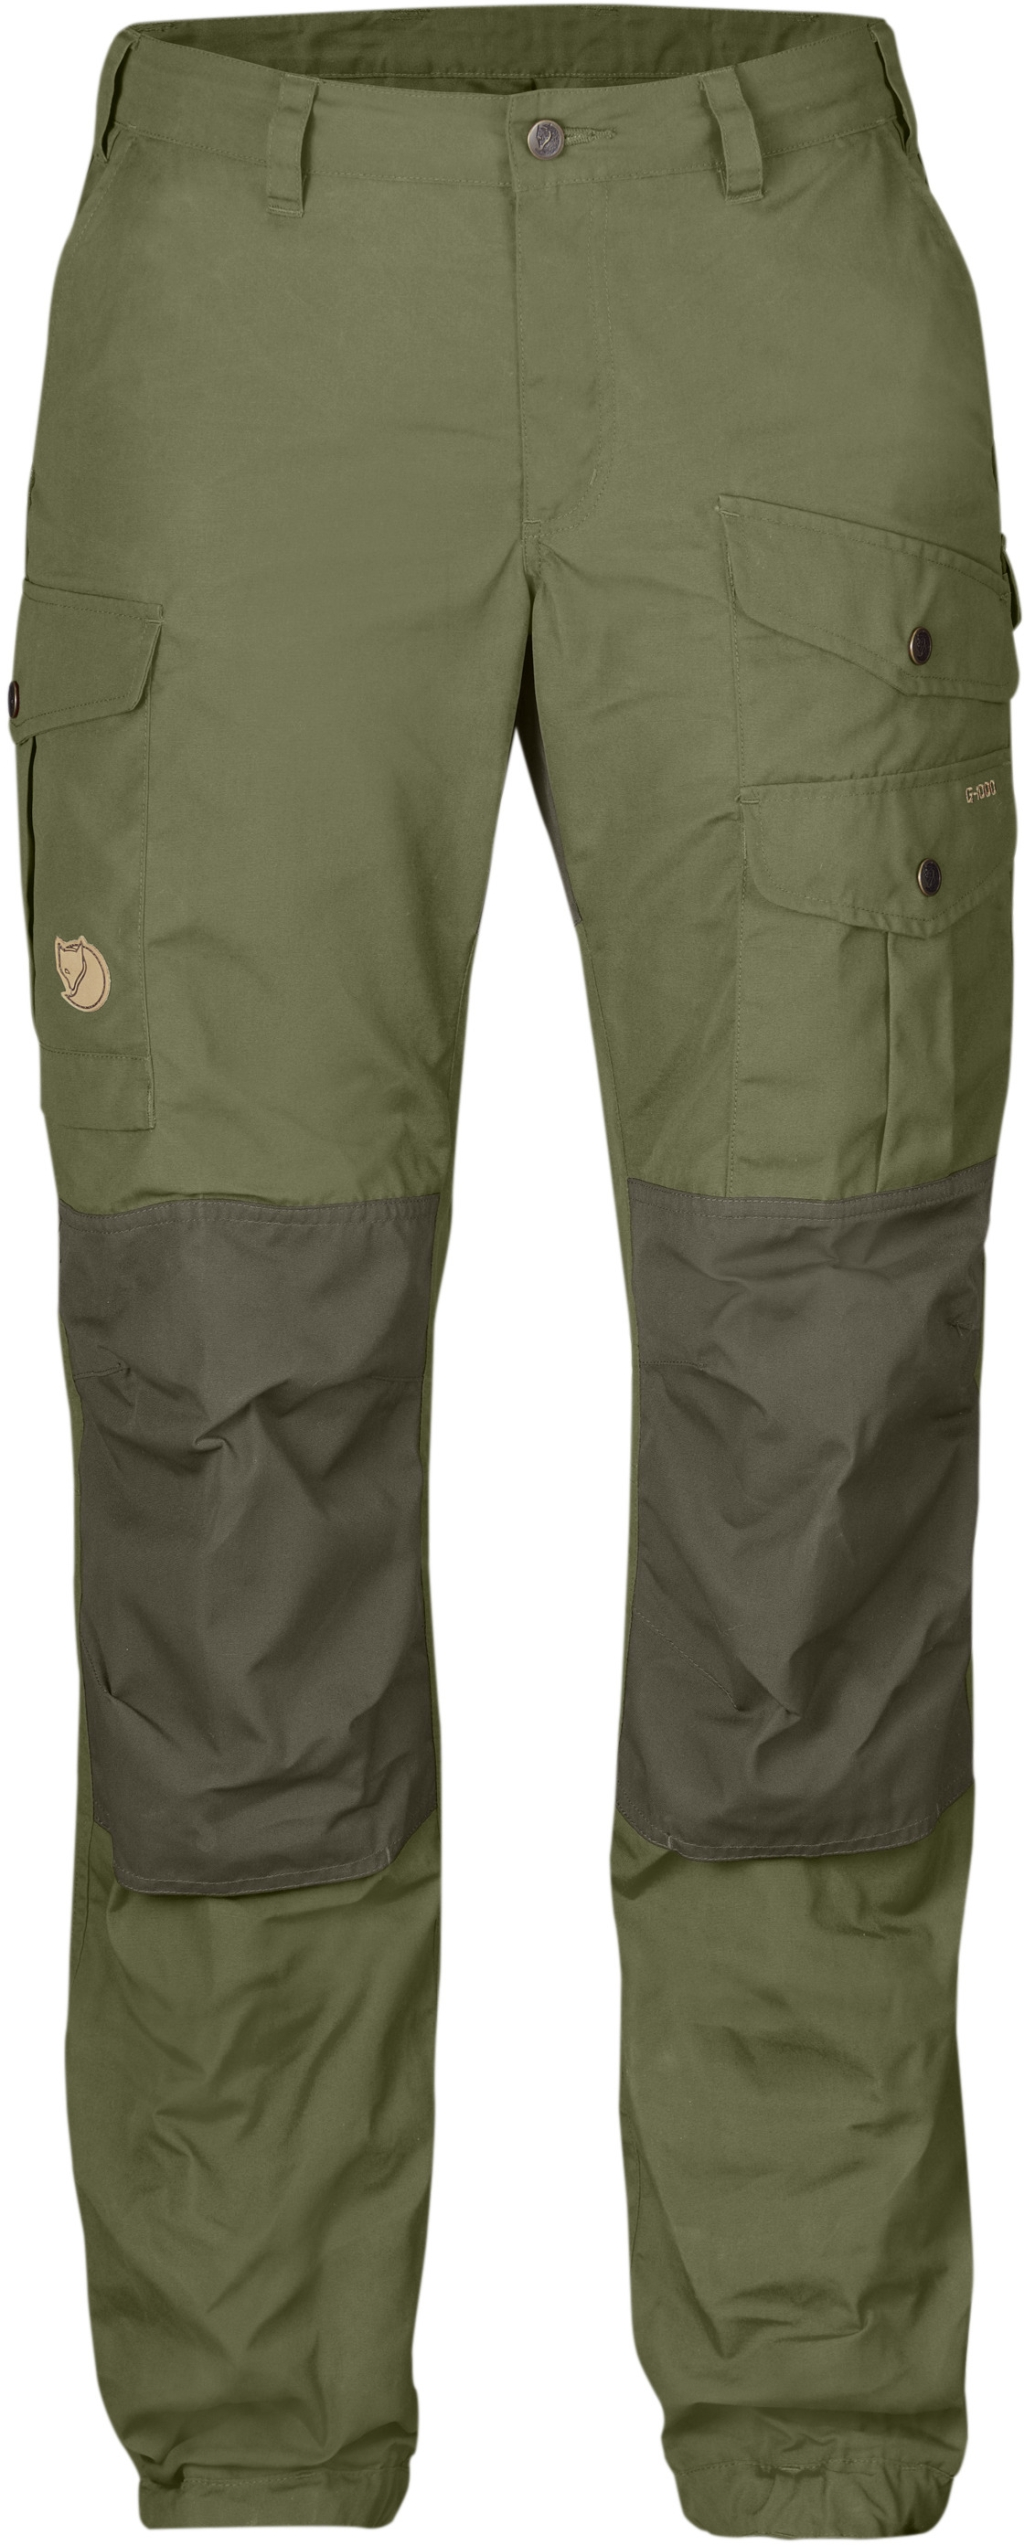 FjallRaven Vidda Pro W. Regular Green-30